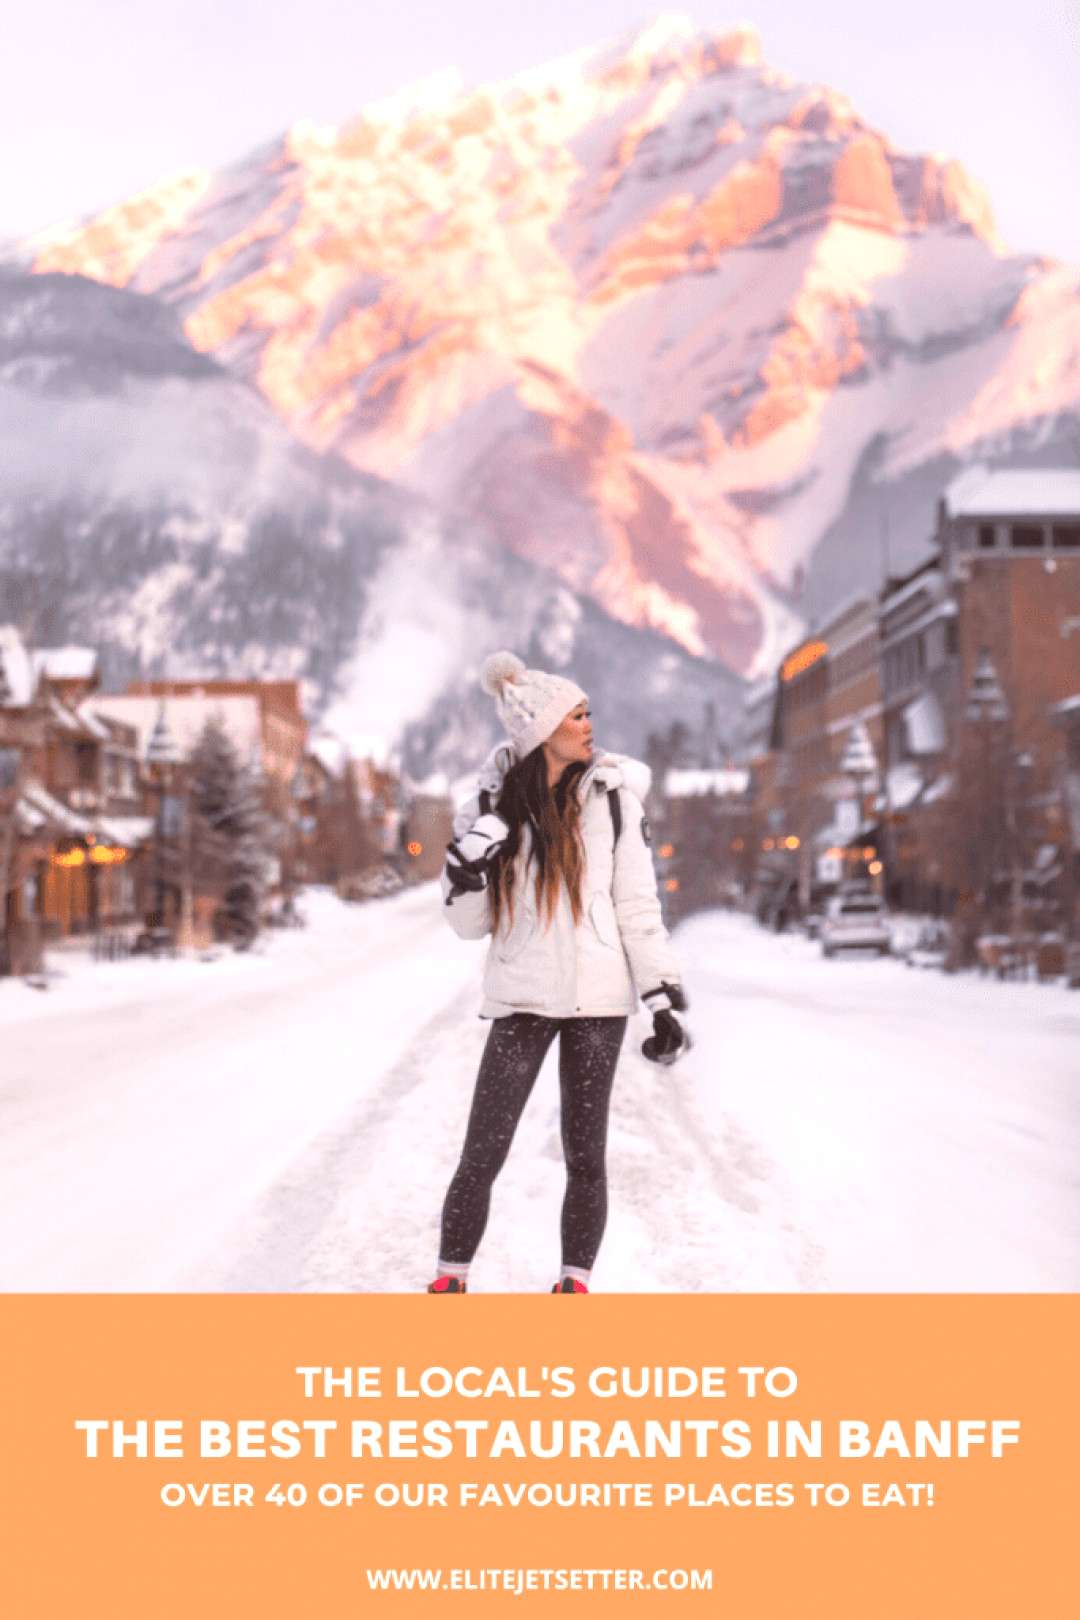 The local's guide to the best restaurants in Banff Our local's guide to the best restaurants in Ban